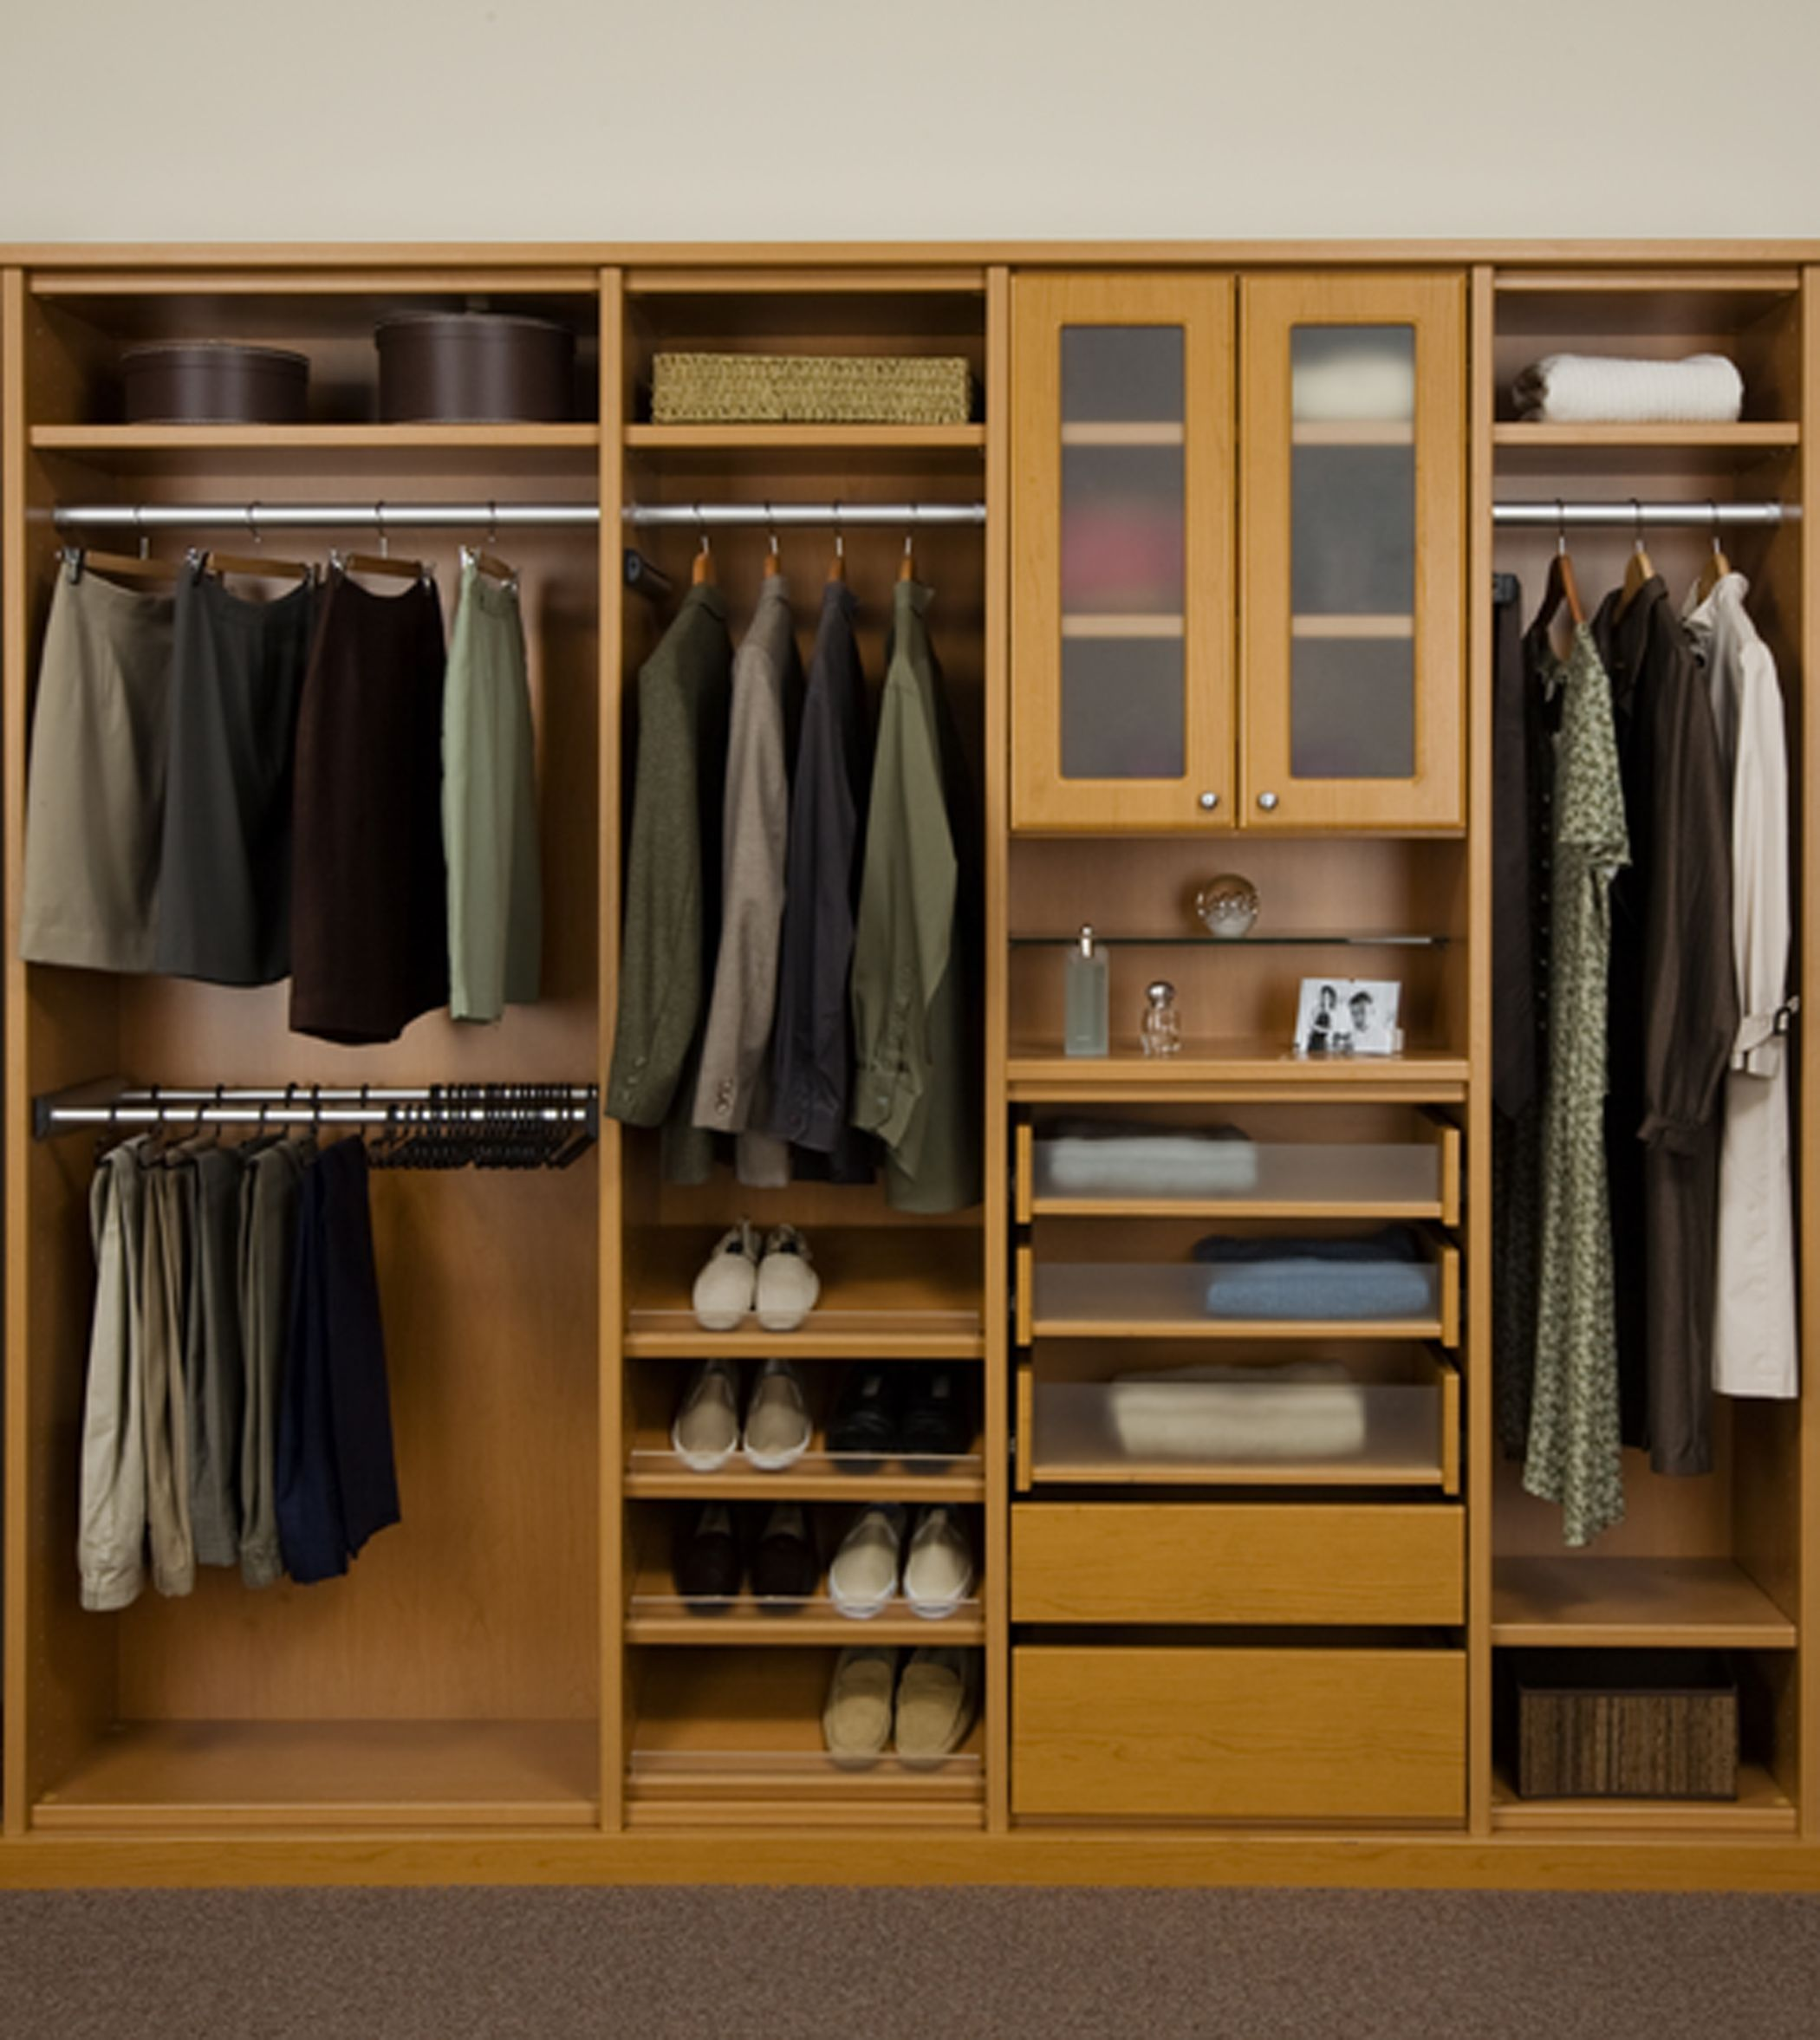 Charmant Companies Closets Design Ideas Picture   22 Amazing Closet Design Companies  Photo Ideas